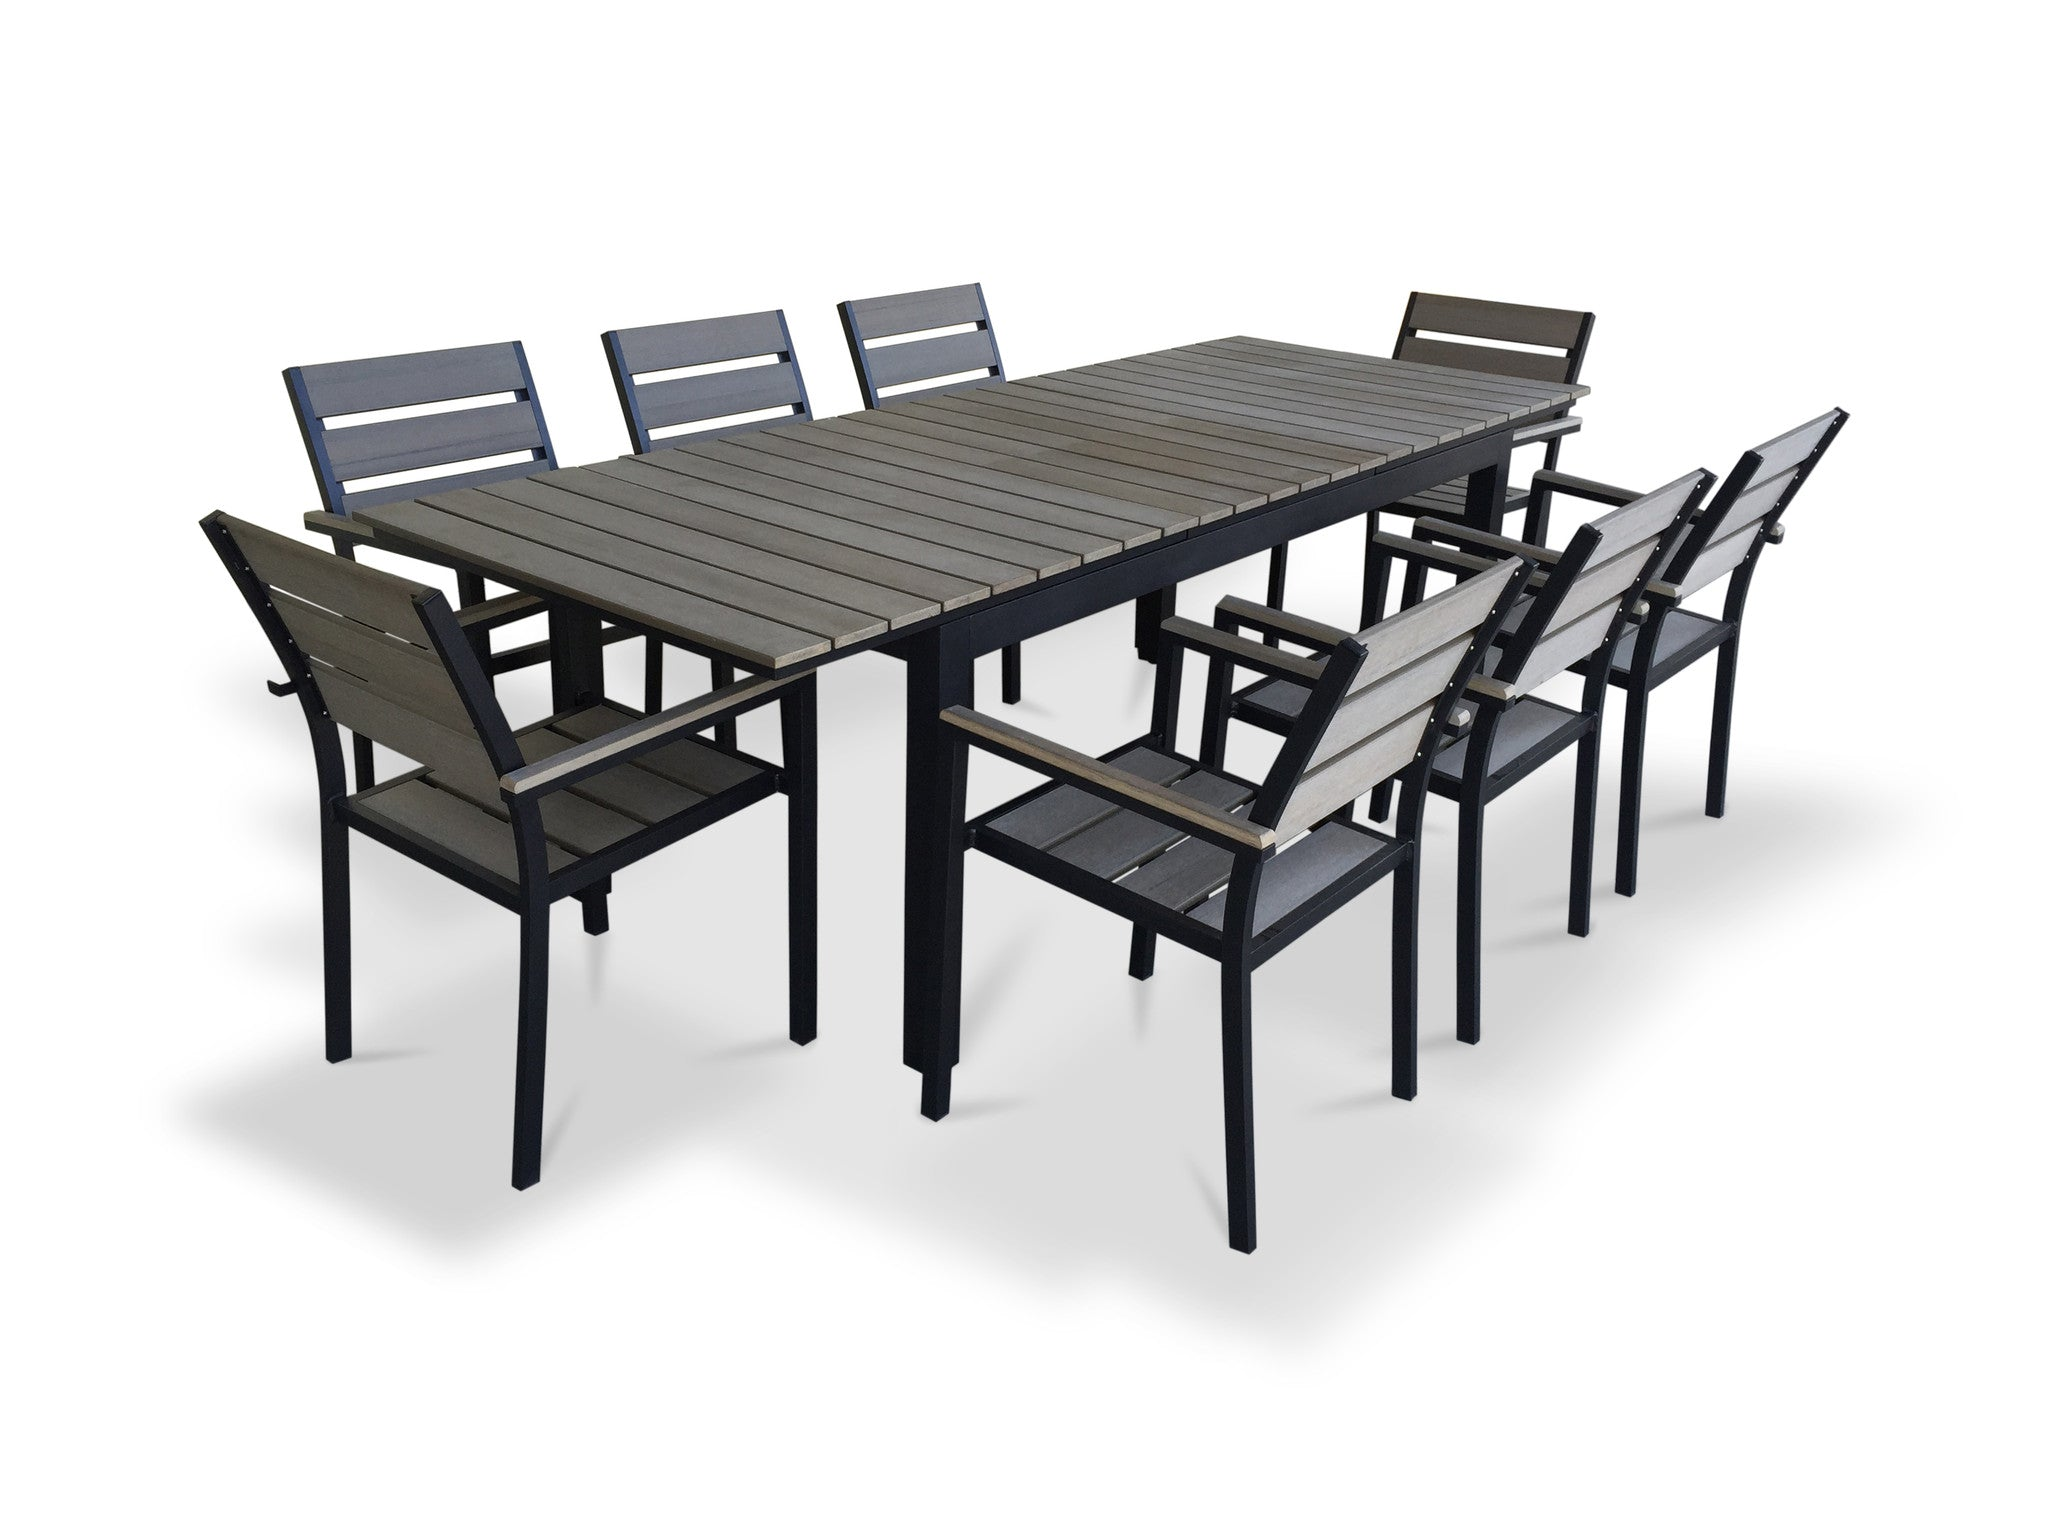 9 Piece Eco Wood Extendable Outdoor Patio Dining Set   Rustic Gray